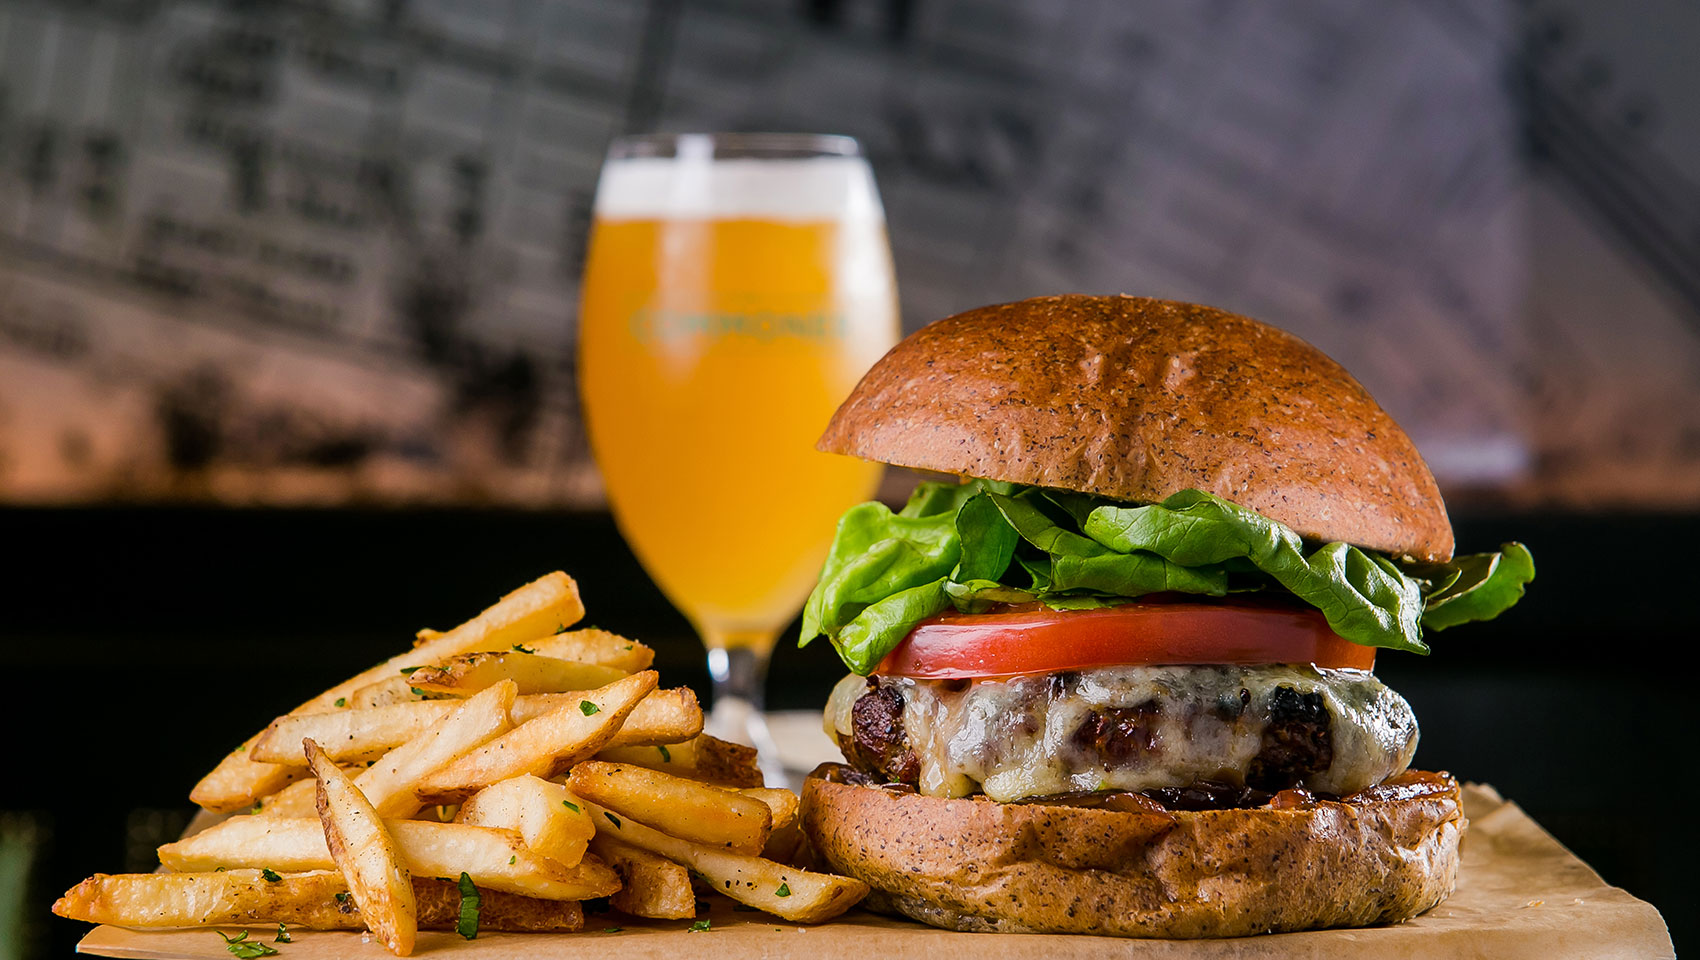 Burger, Fries, Beer